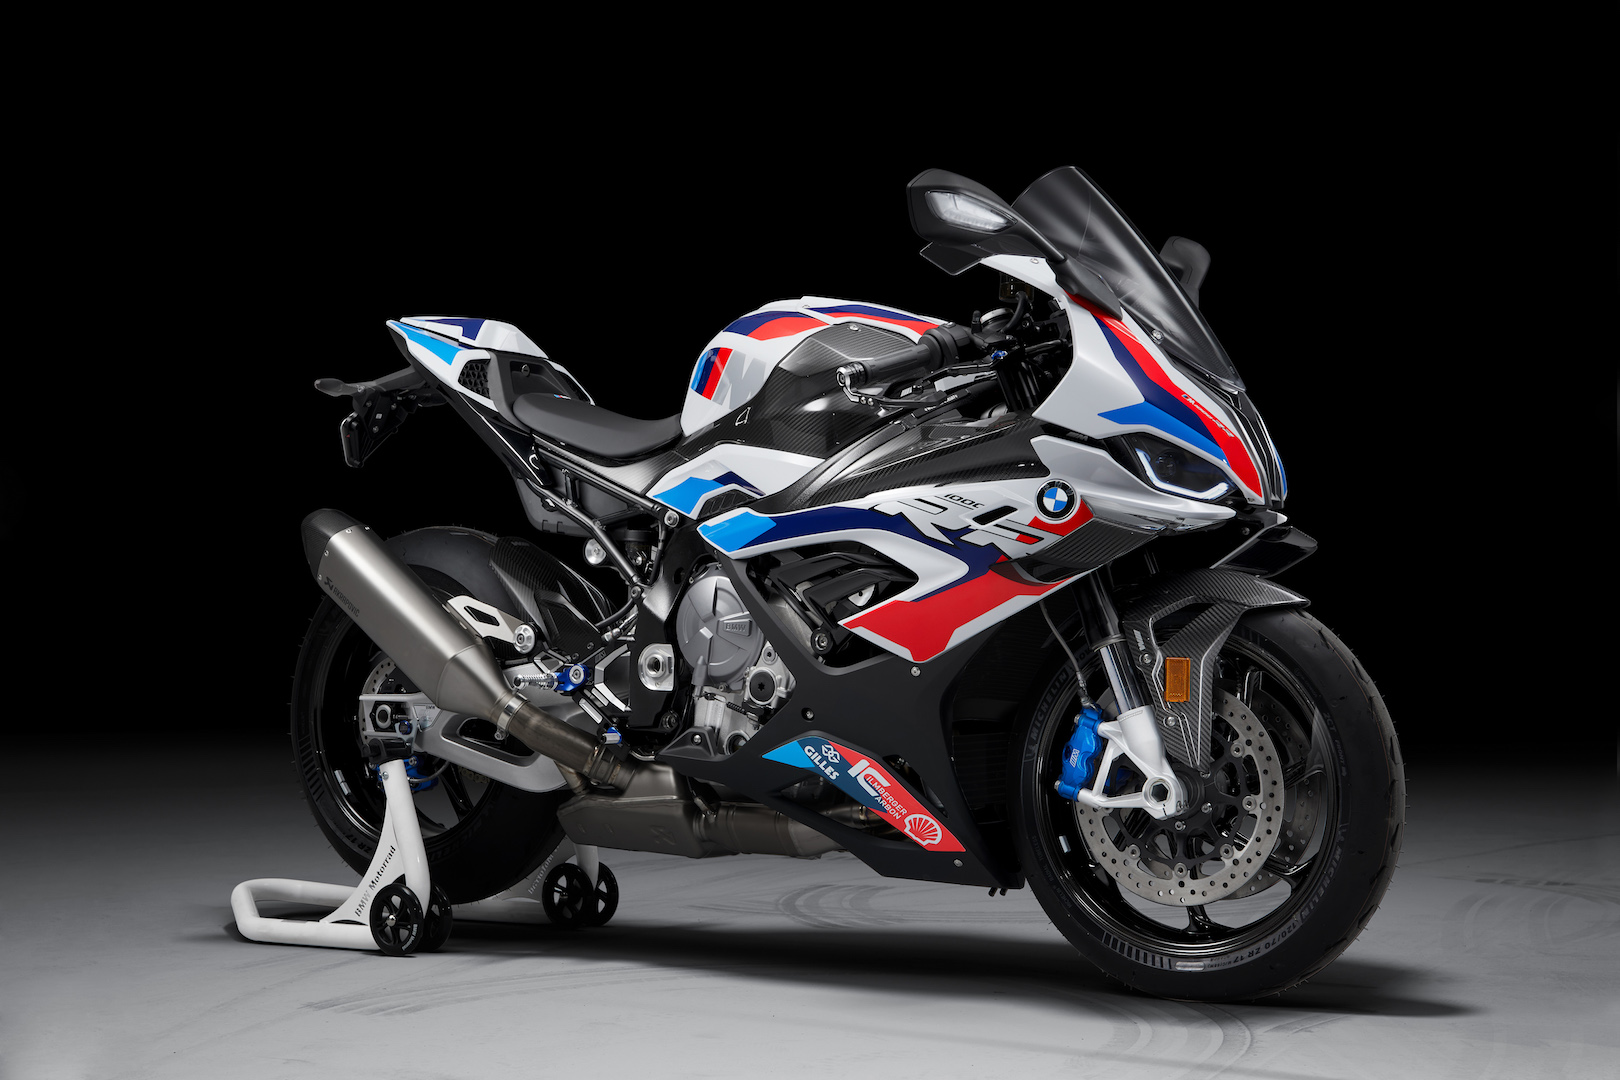 BMW M1000RR Revealed. The first M Motorcycle - DriveMag Riders